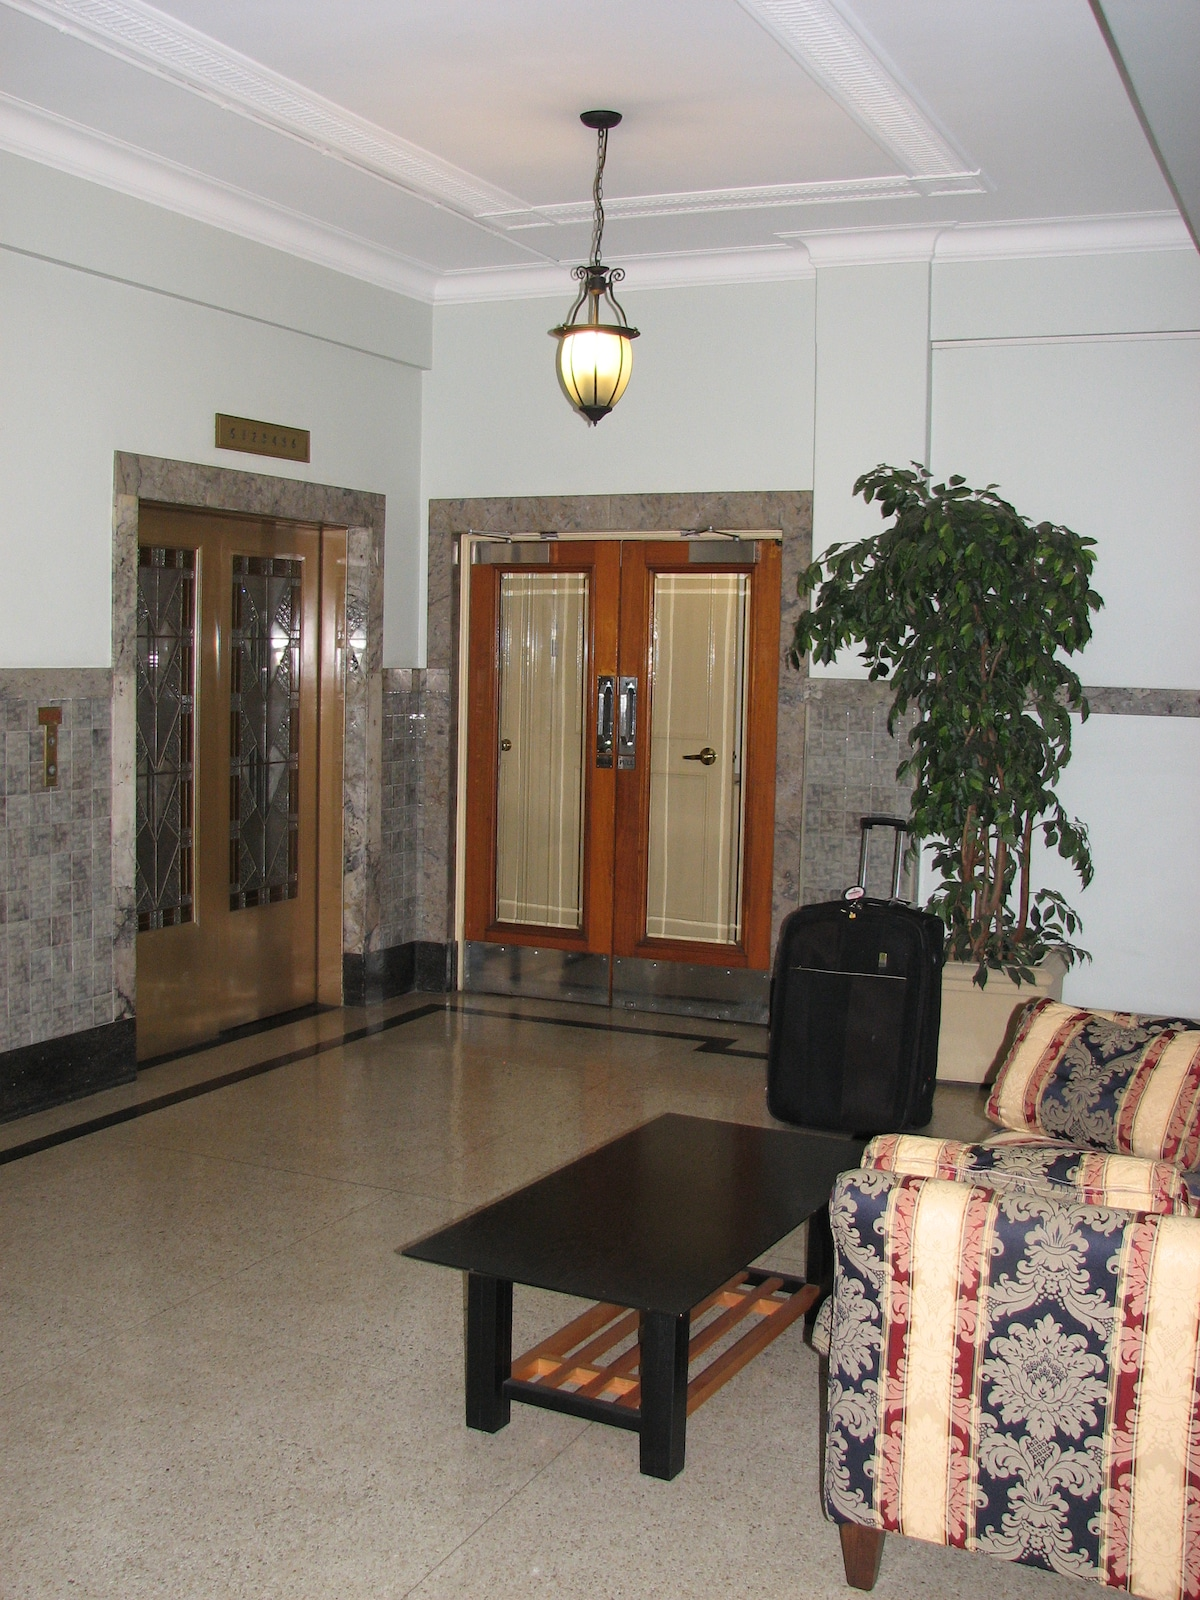 The lobby outside of the apartment